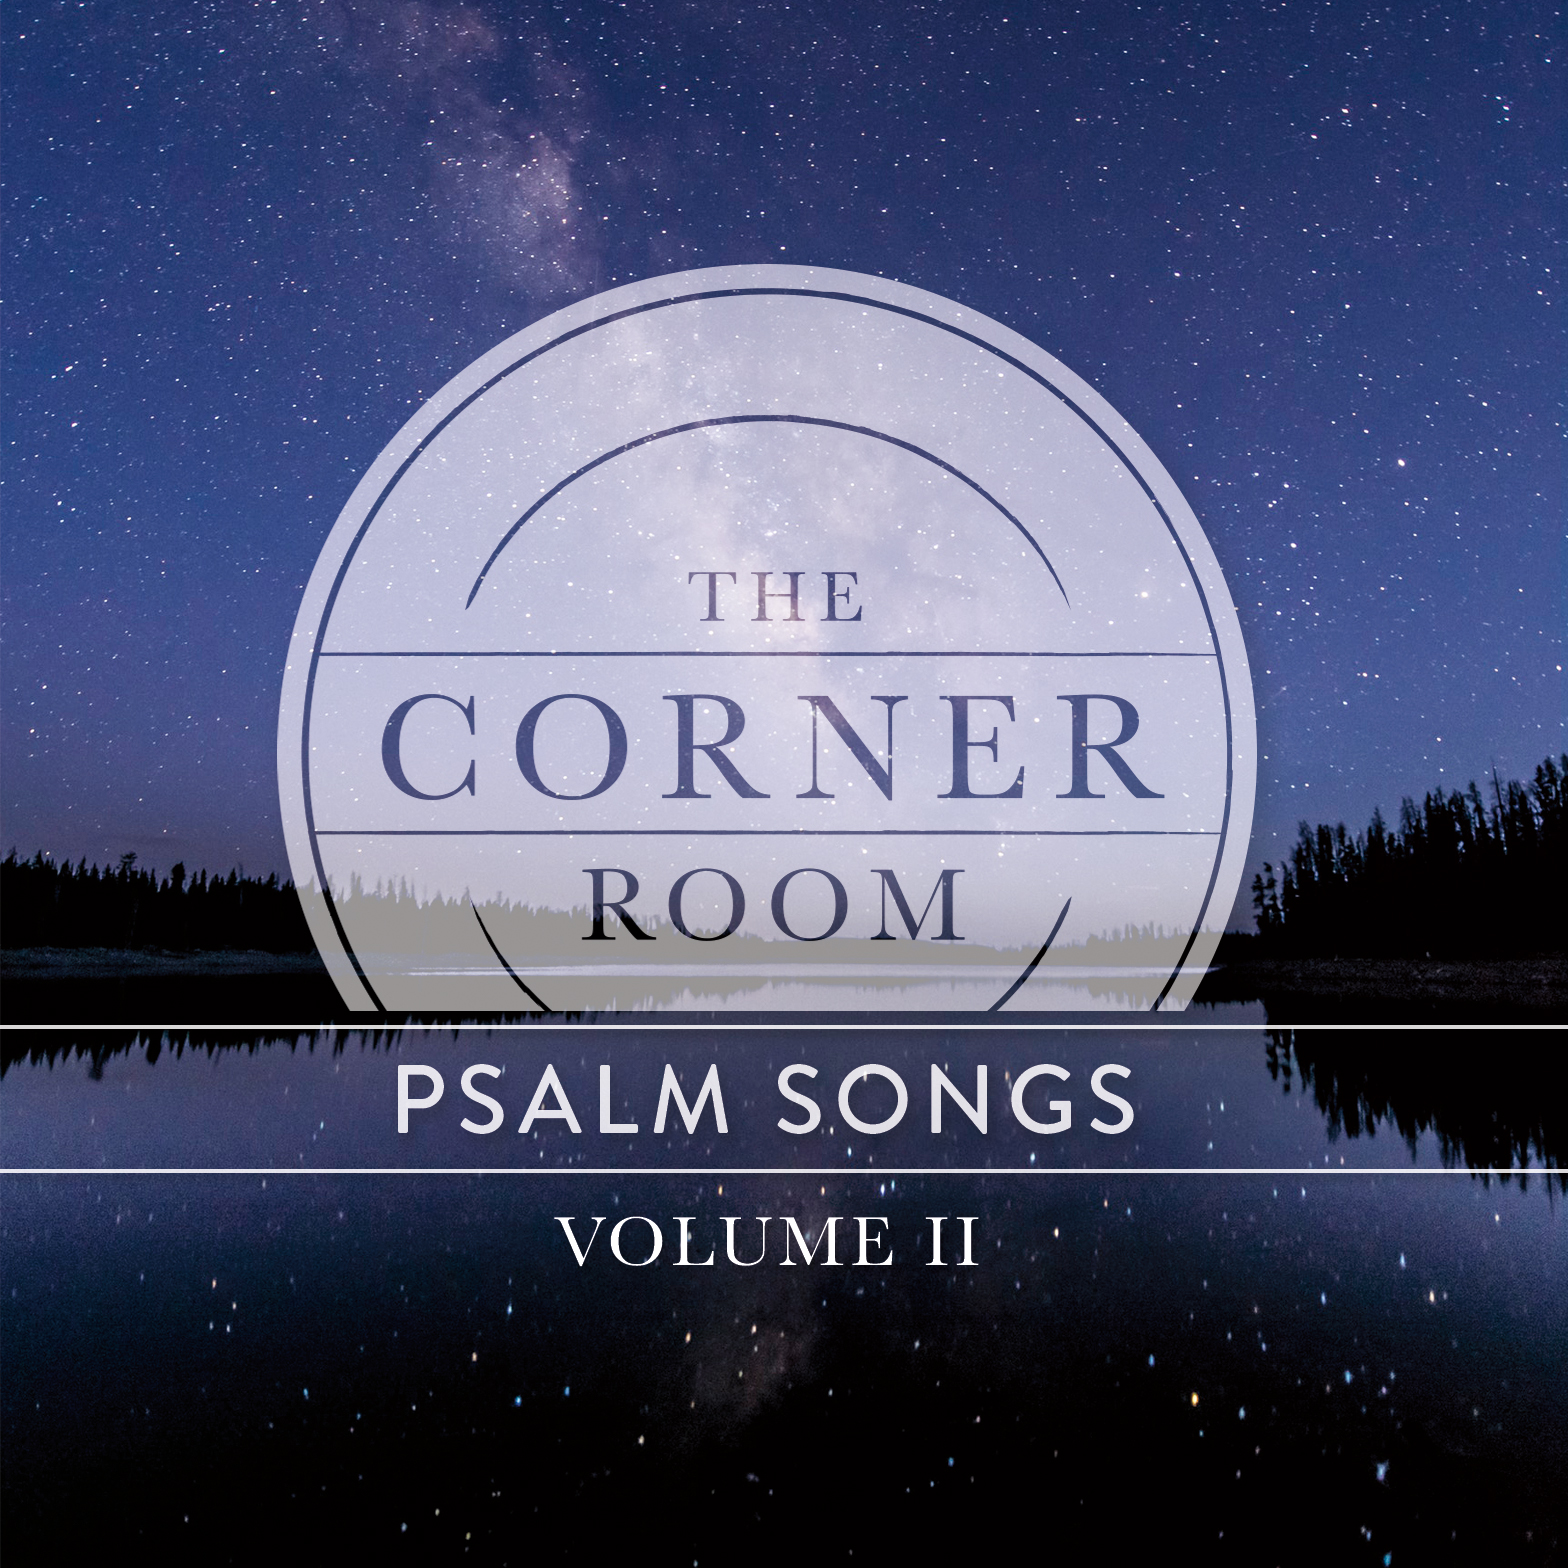 J100_Psalm-song-vol2_RBG.jpg